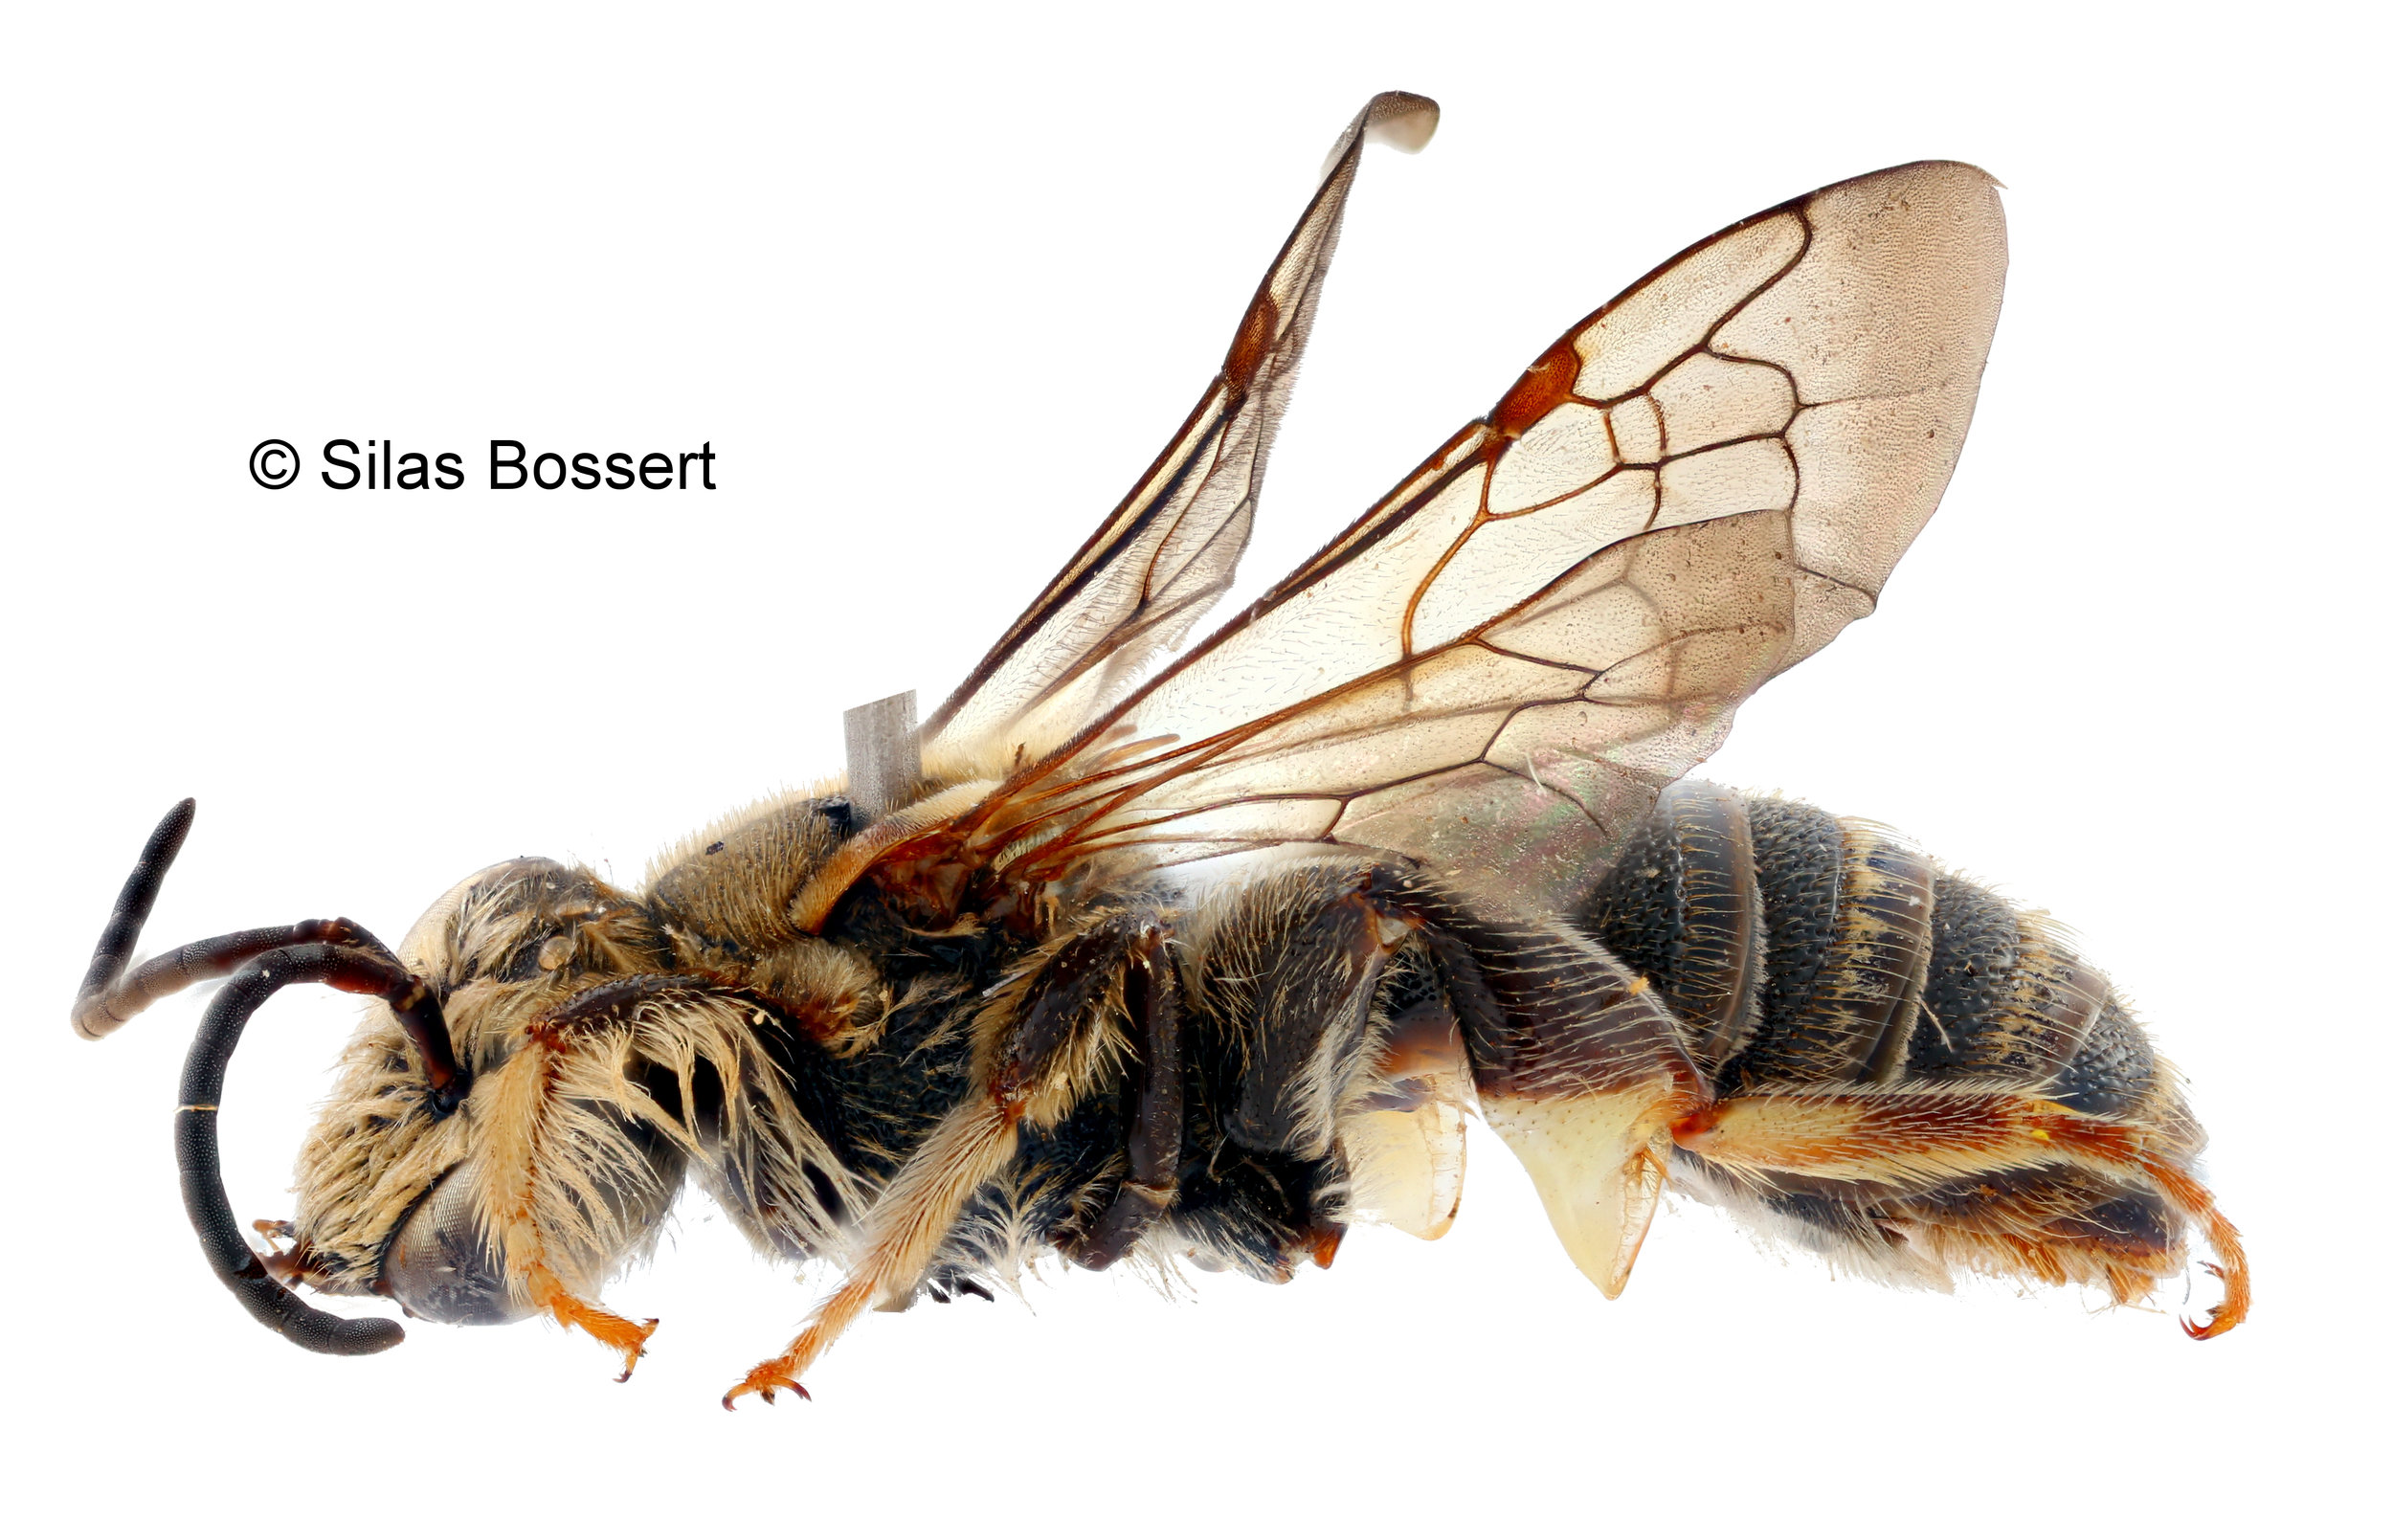 Stictonomia sangaensis - Stictonomia is a genus of nomiine bees restricted to Africa. Only 10 species are known, most of them only by a few records!